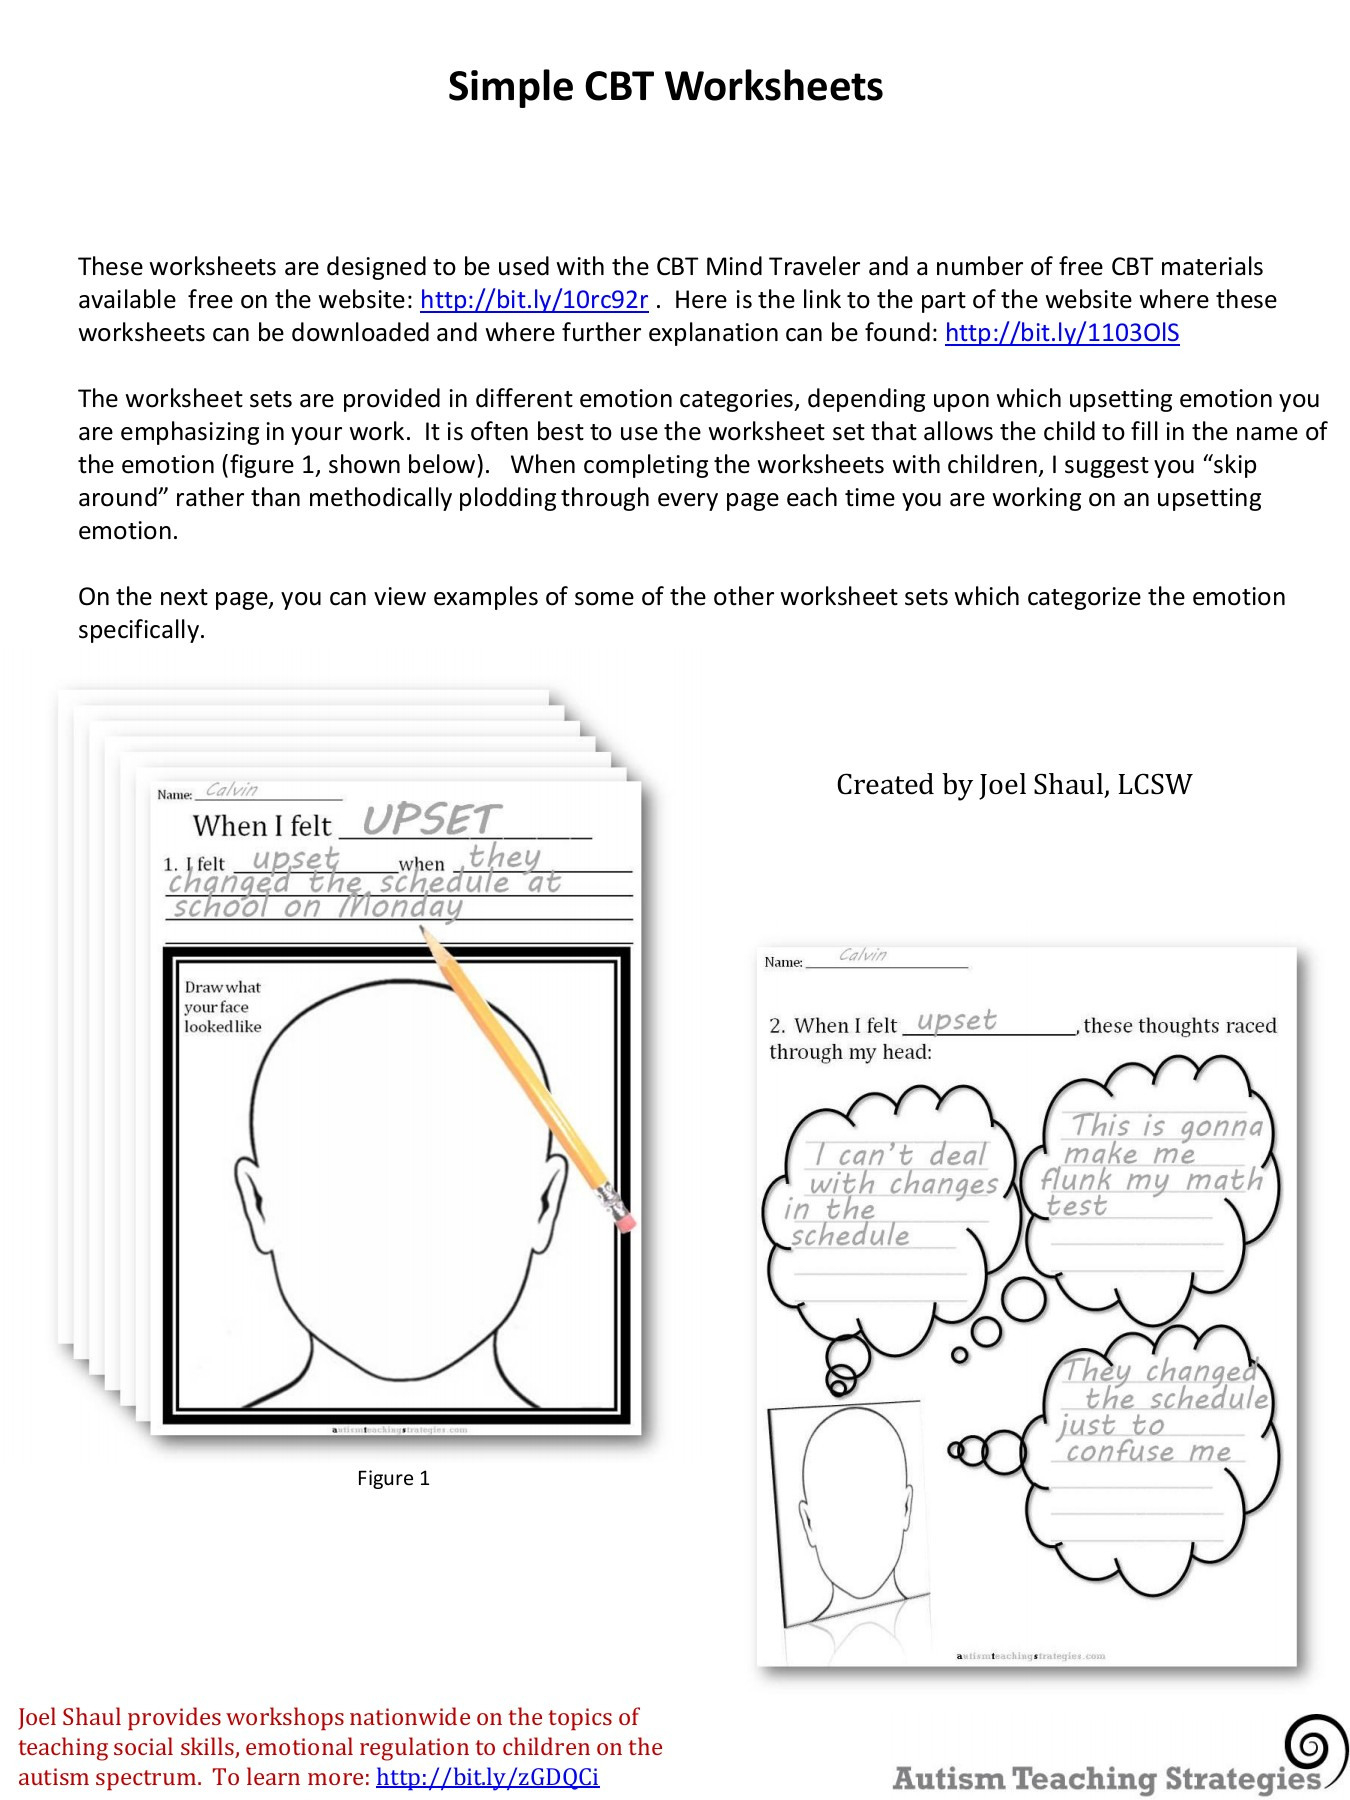 Simple Cbt Worksheets Autism Teaching Strategies Pages 1